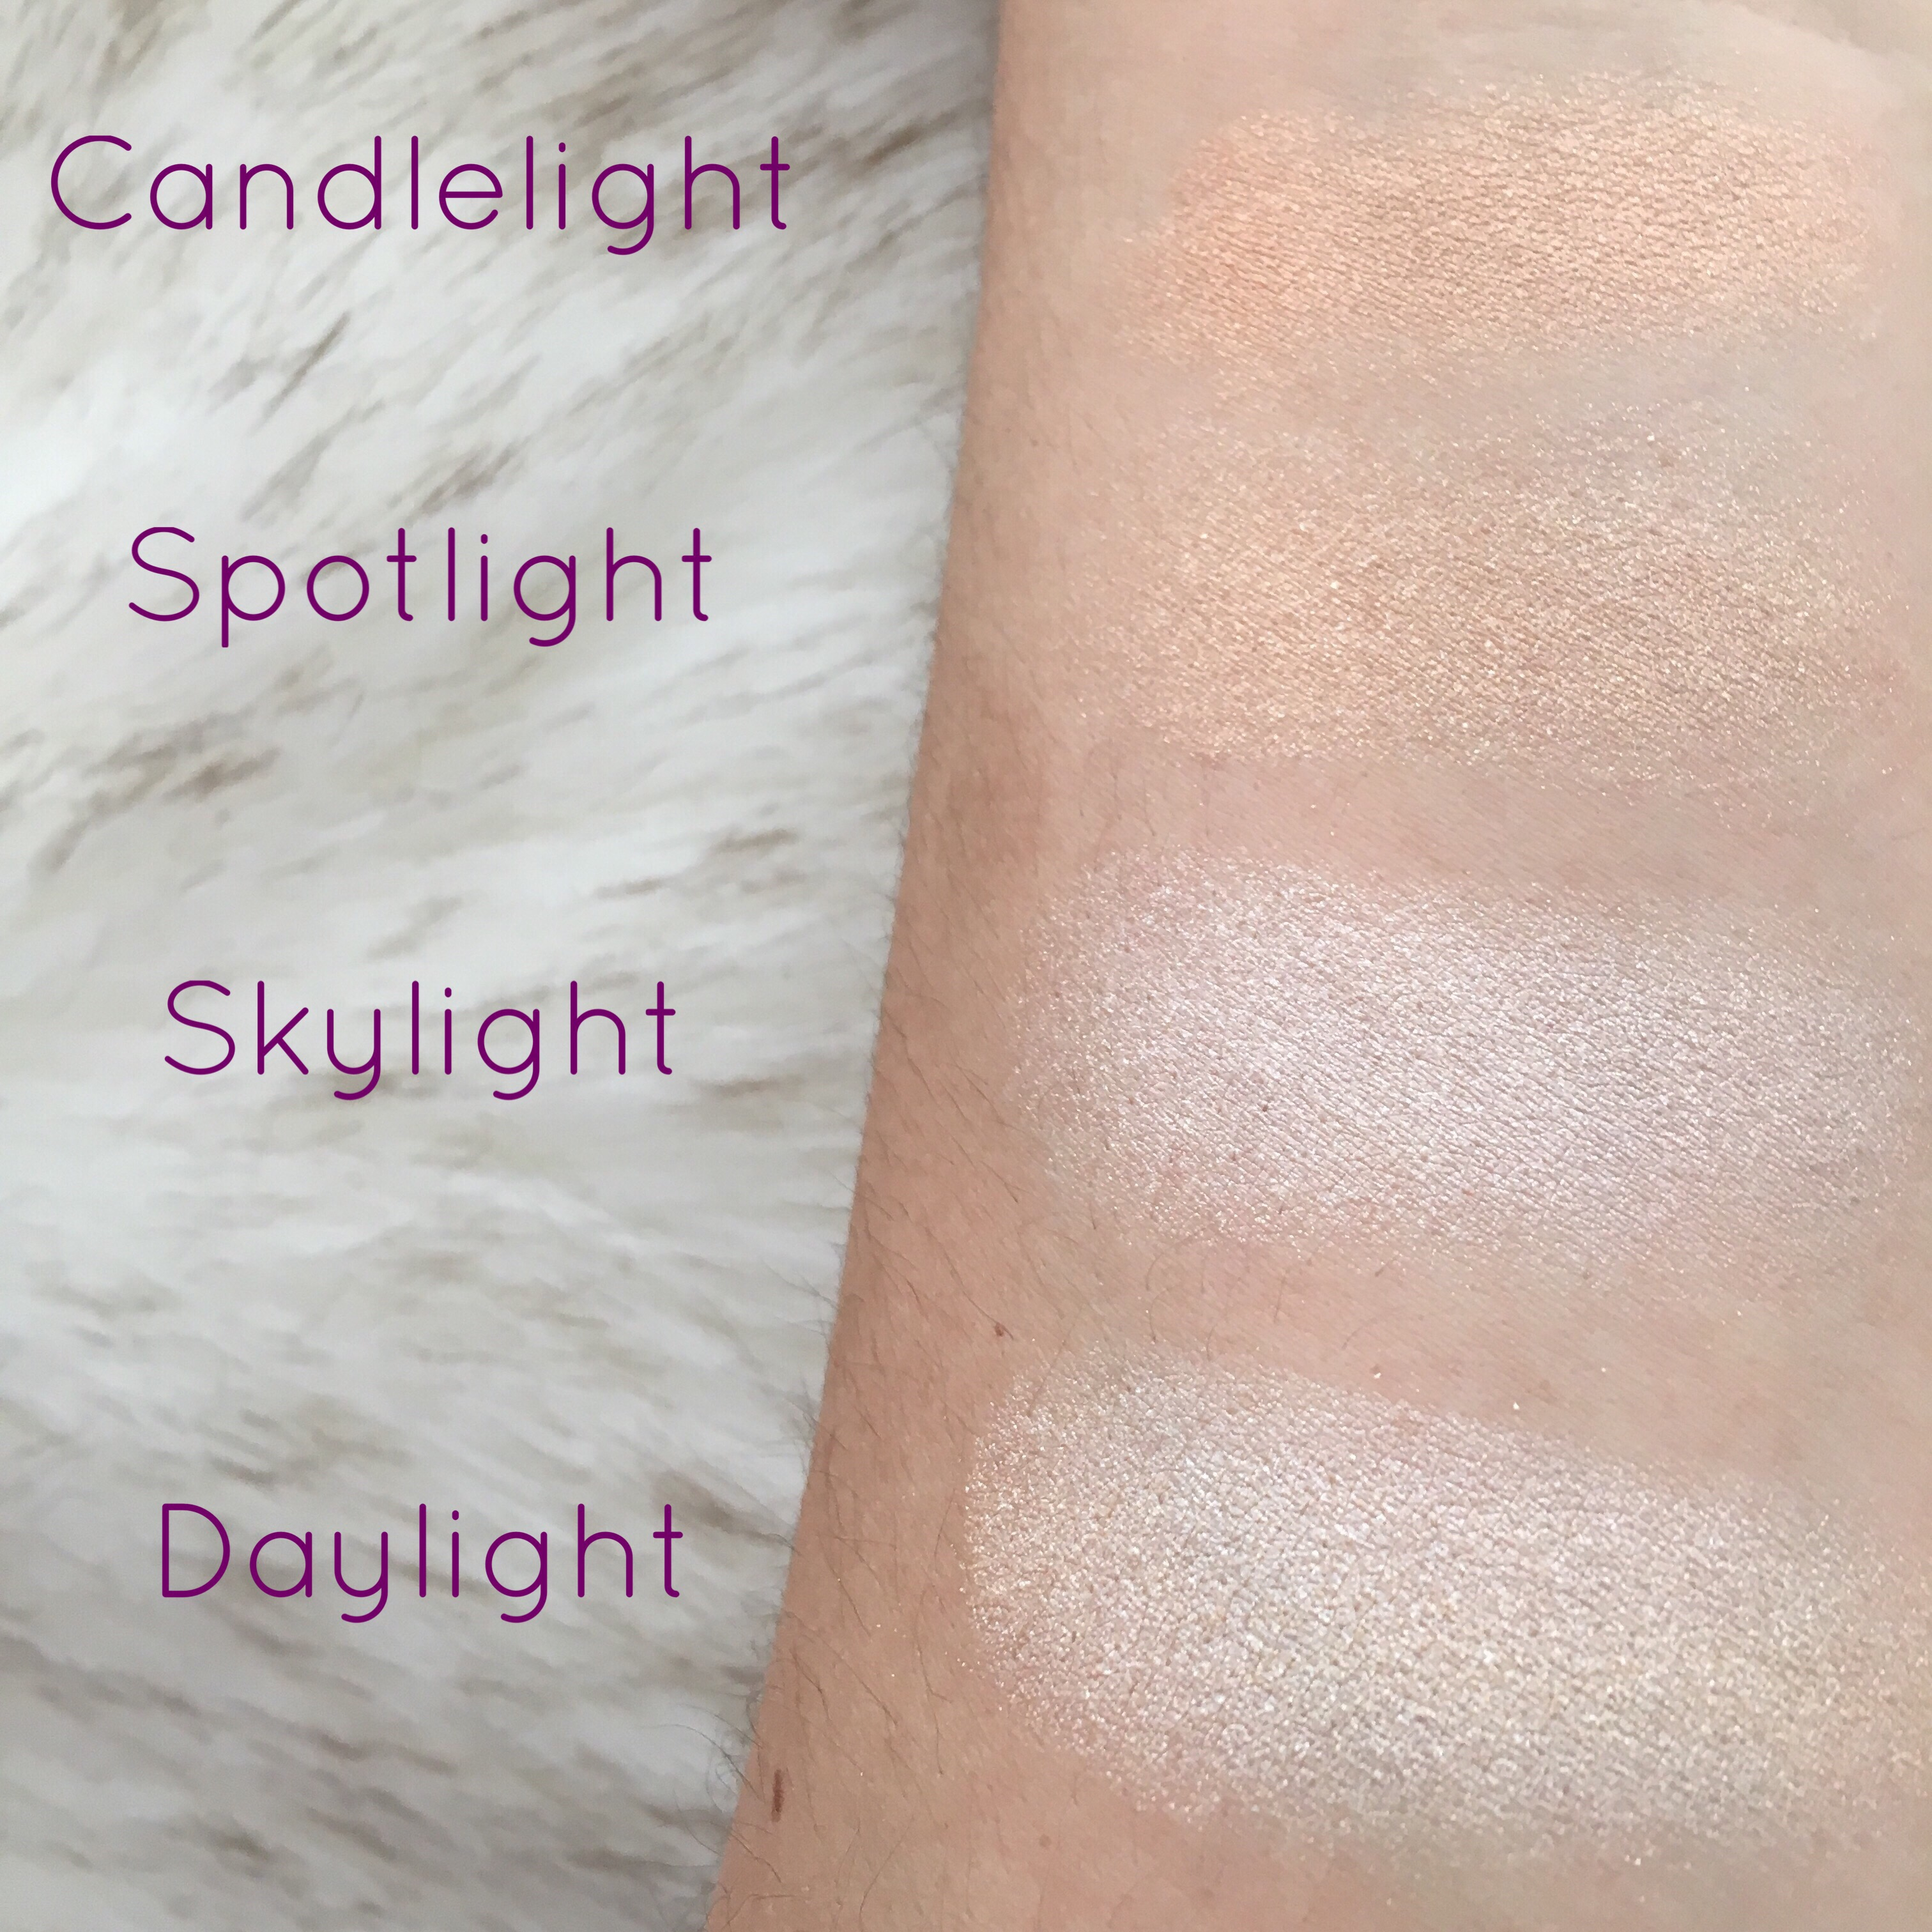 Tarte stunner vs tarte stunner dupe comparison - The First Shade Is Daylight Which Is Described As A White Gold I Love This Color Because It Is So Bright And Has A Gorgeous Golden Shimmer Throughout